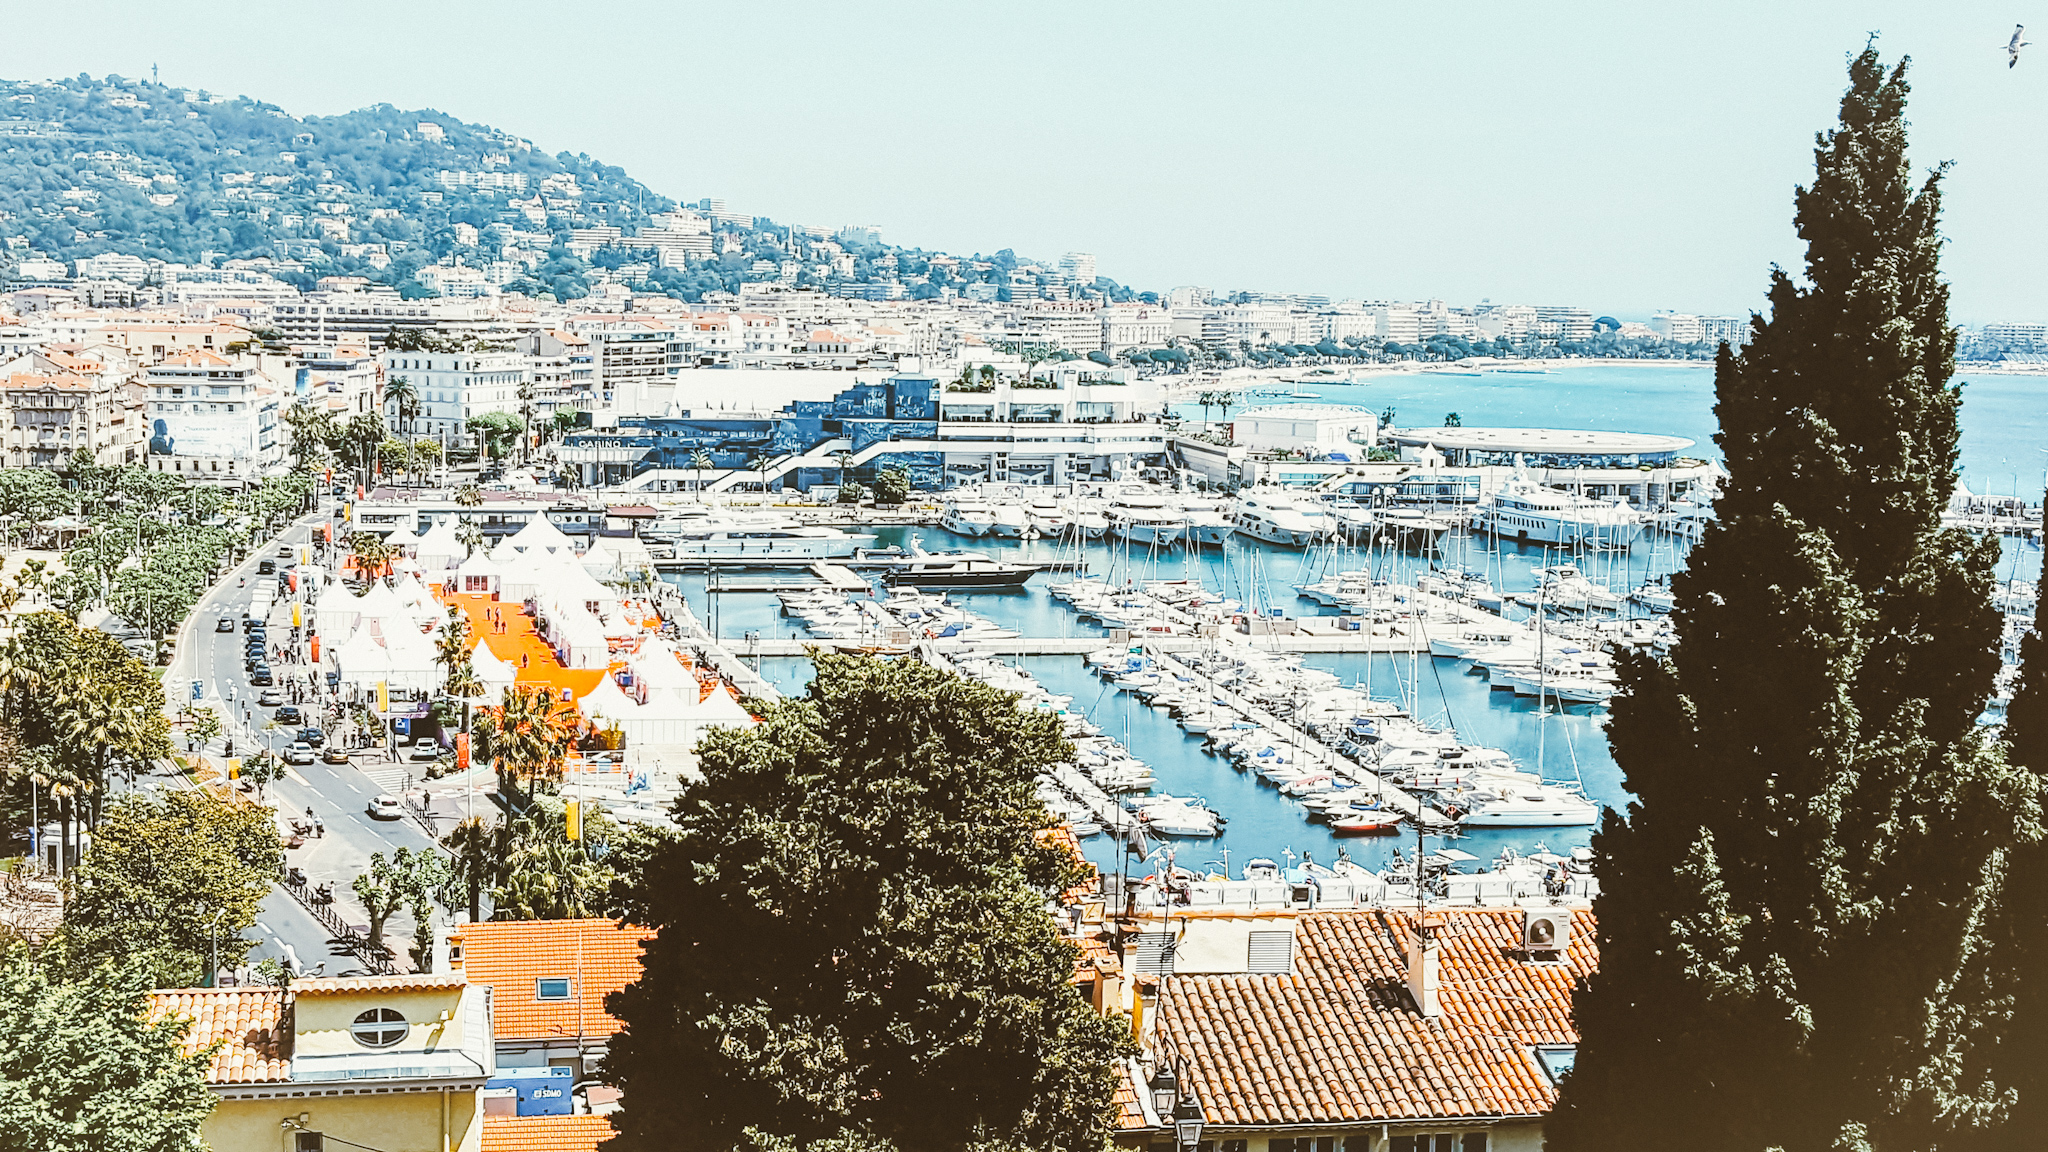 6 Days in the Cote D'Azur - The French Riviera